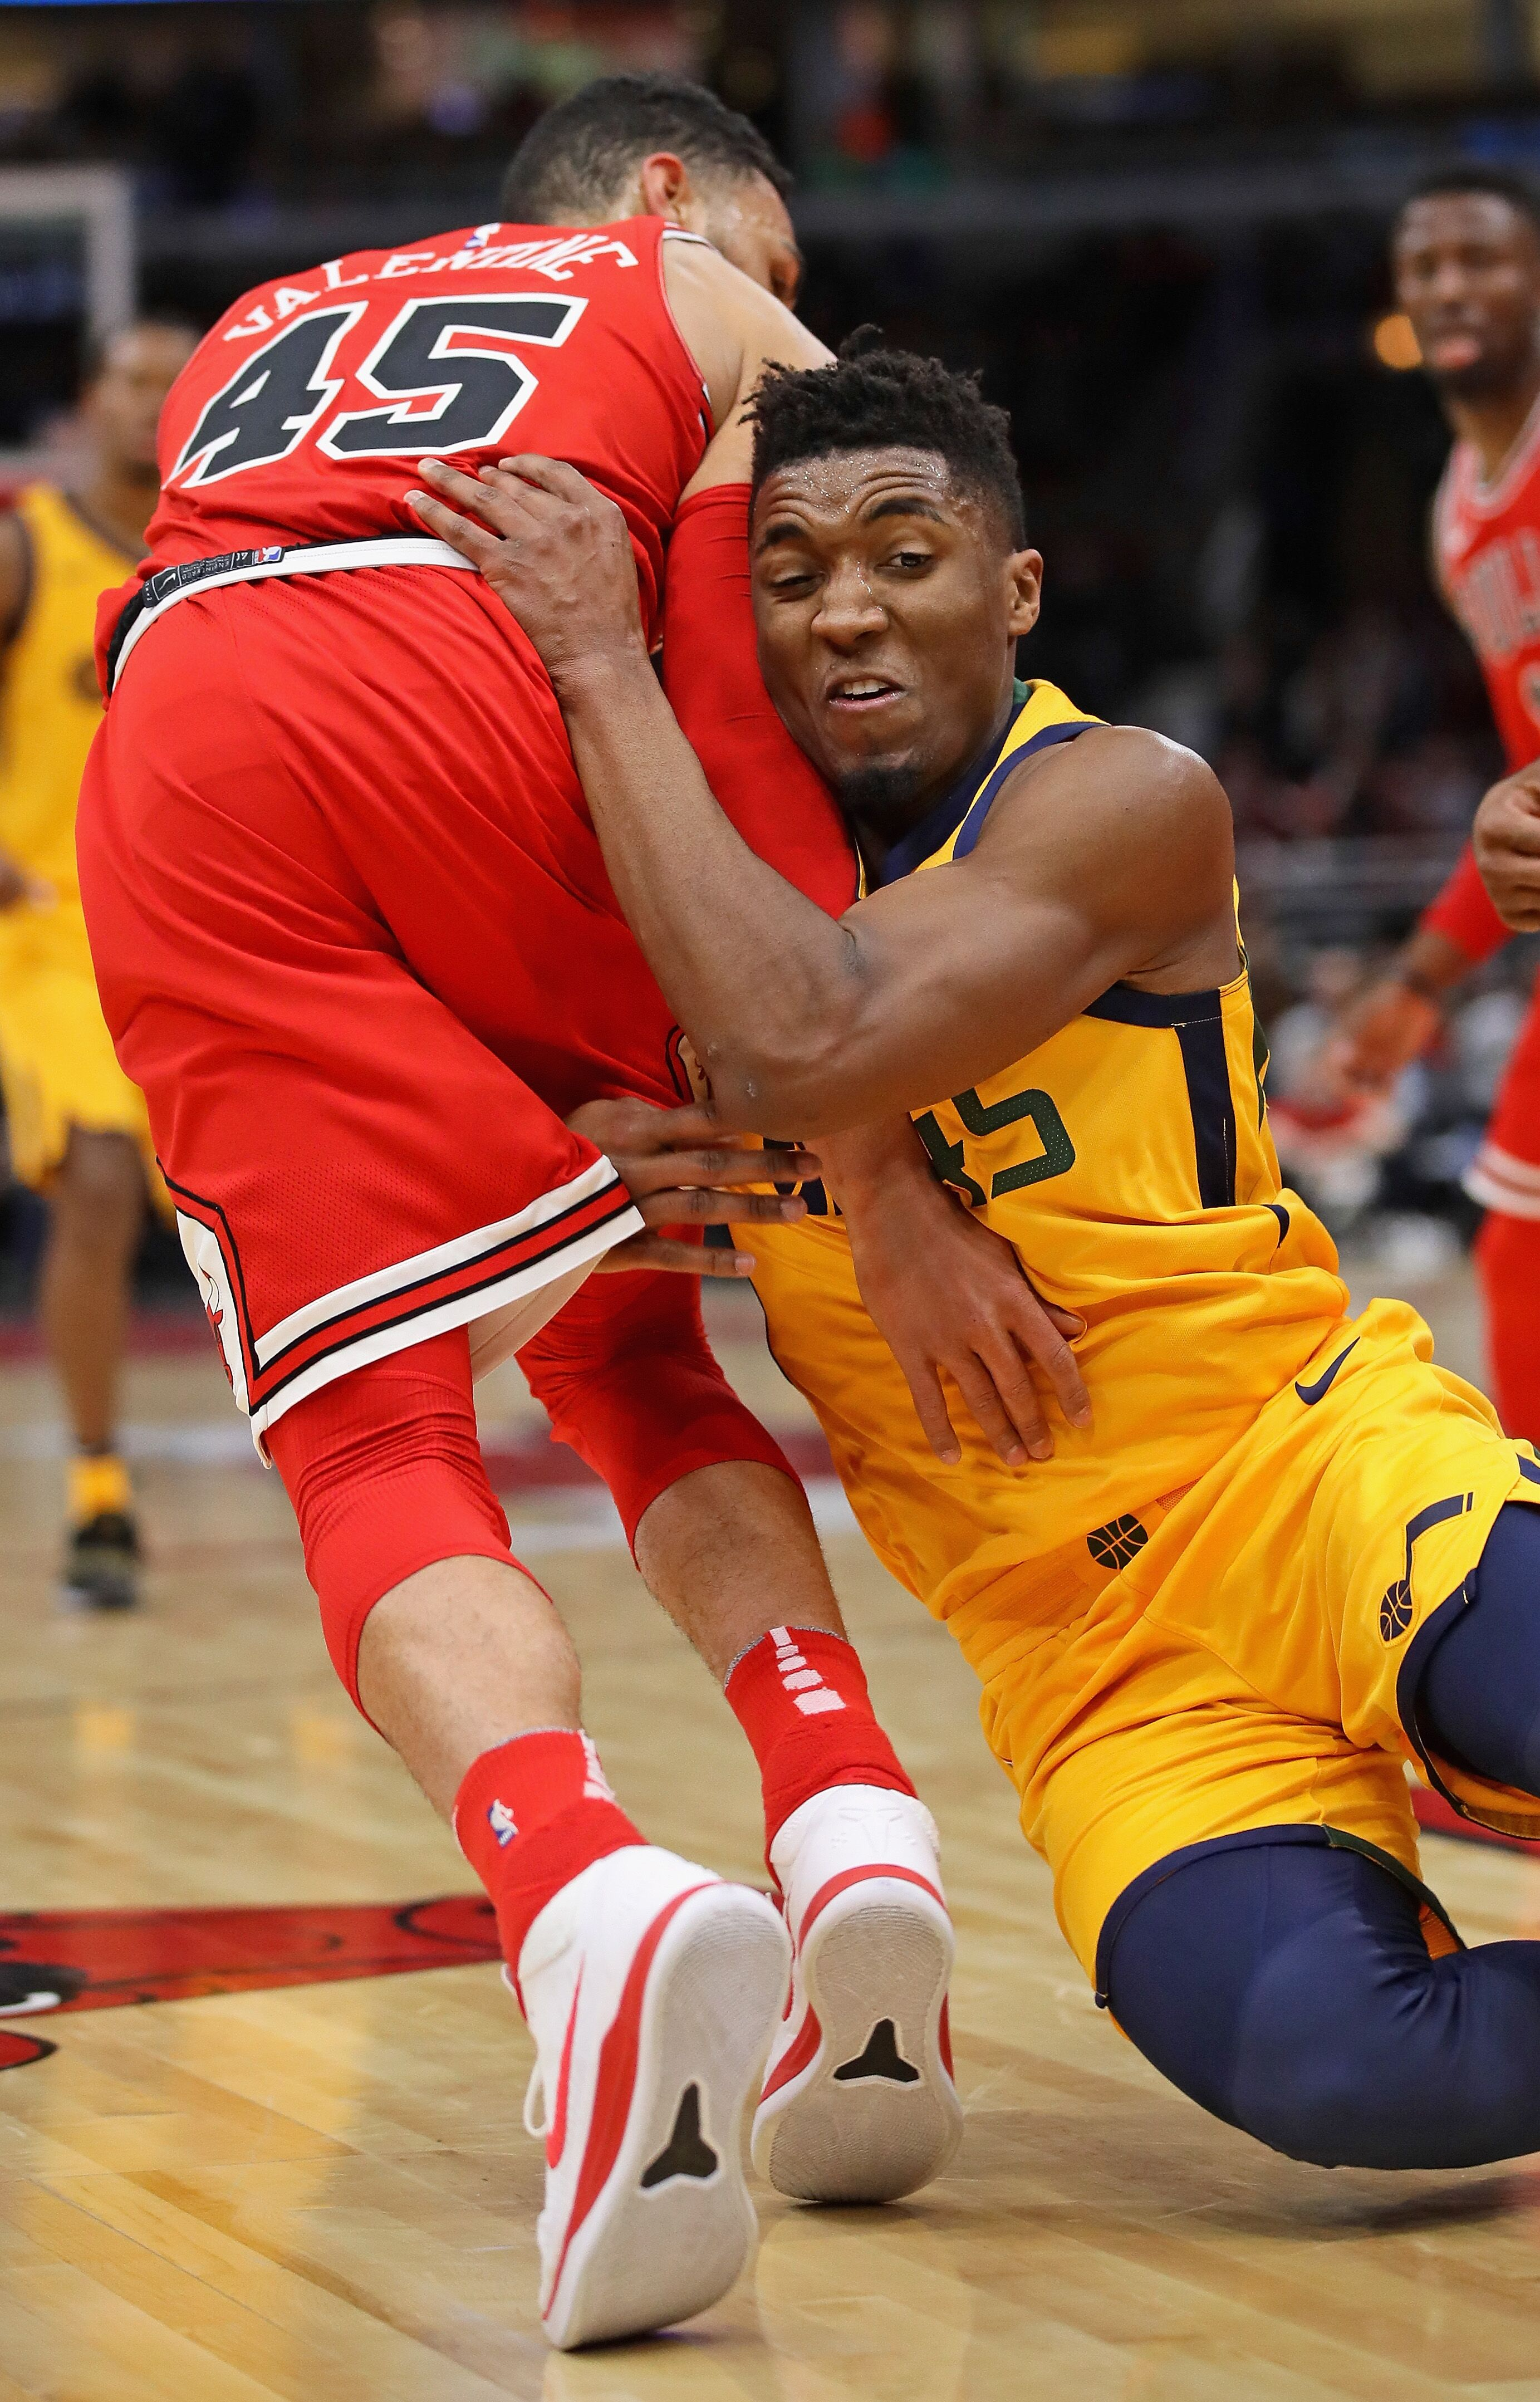 892051134-utah-jazz-v-chicago-bulls.jpg